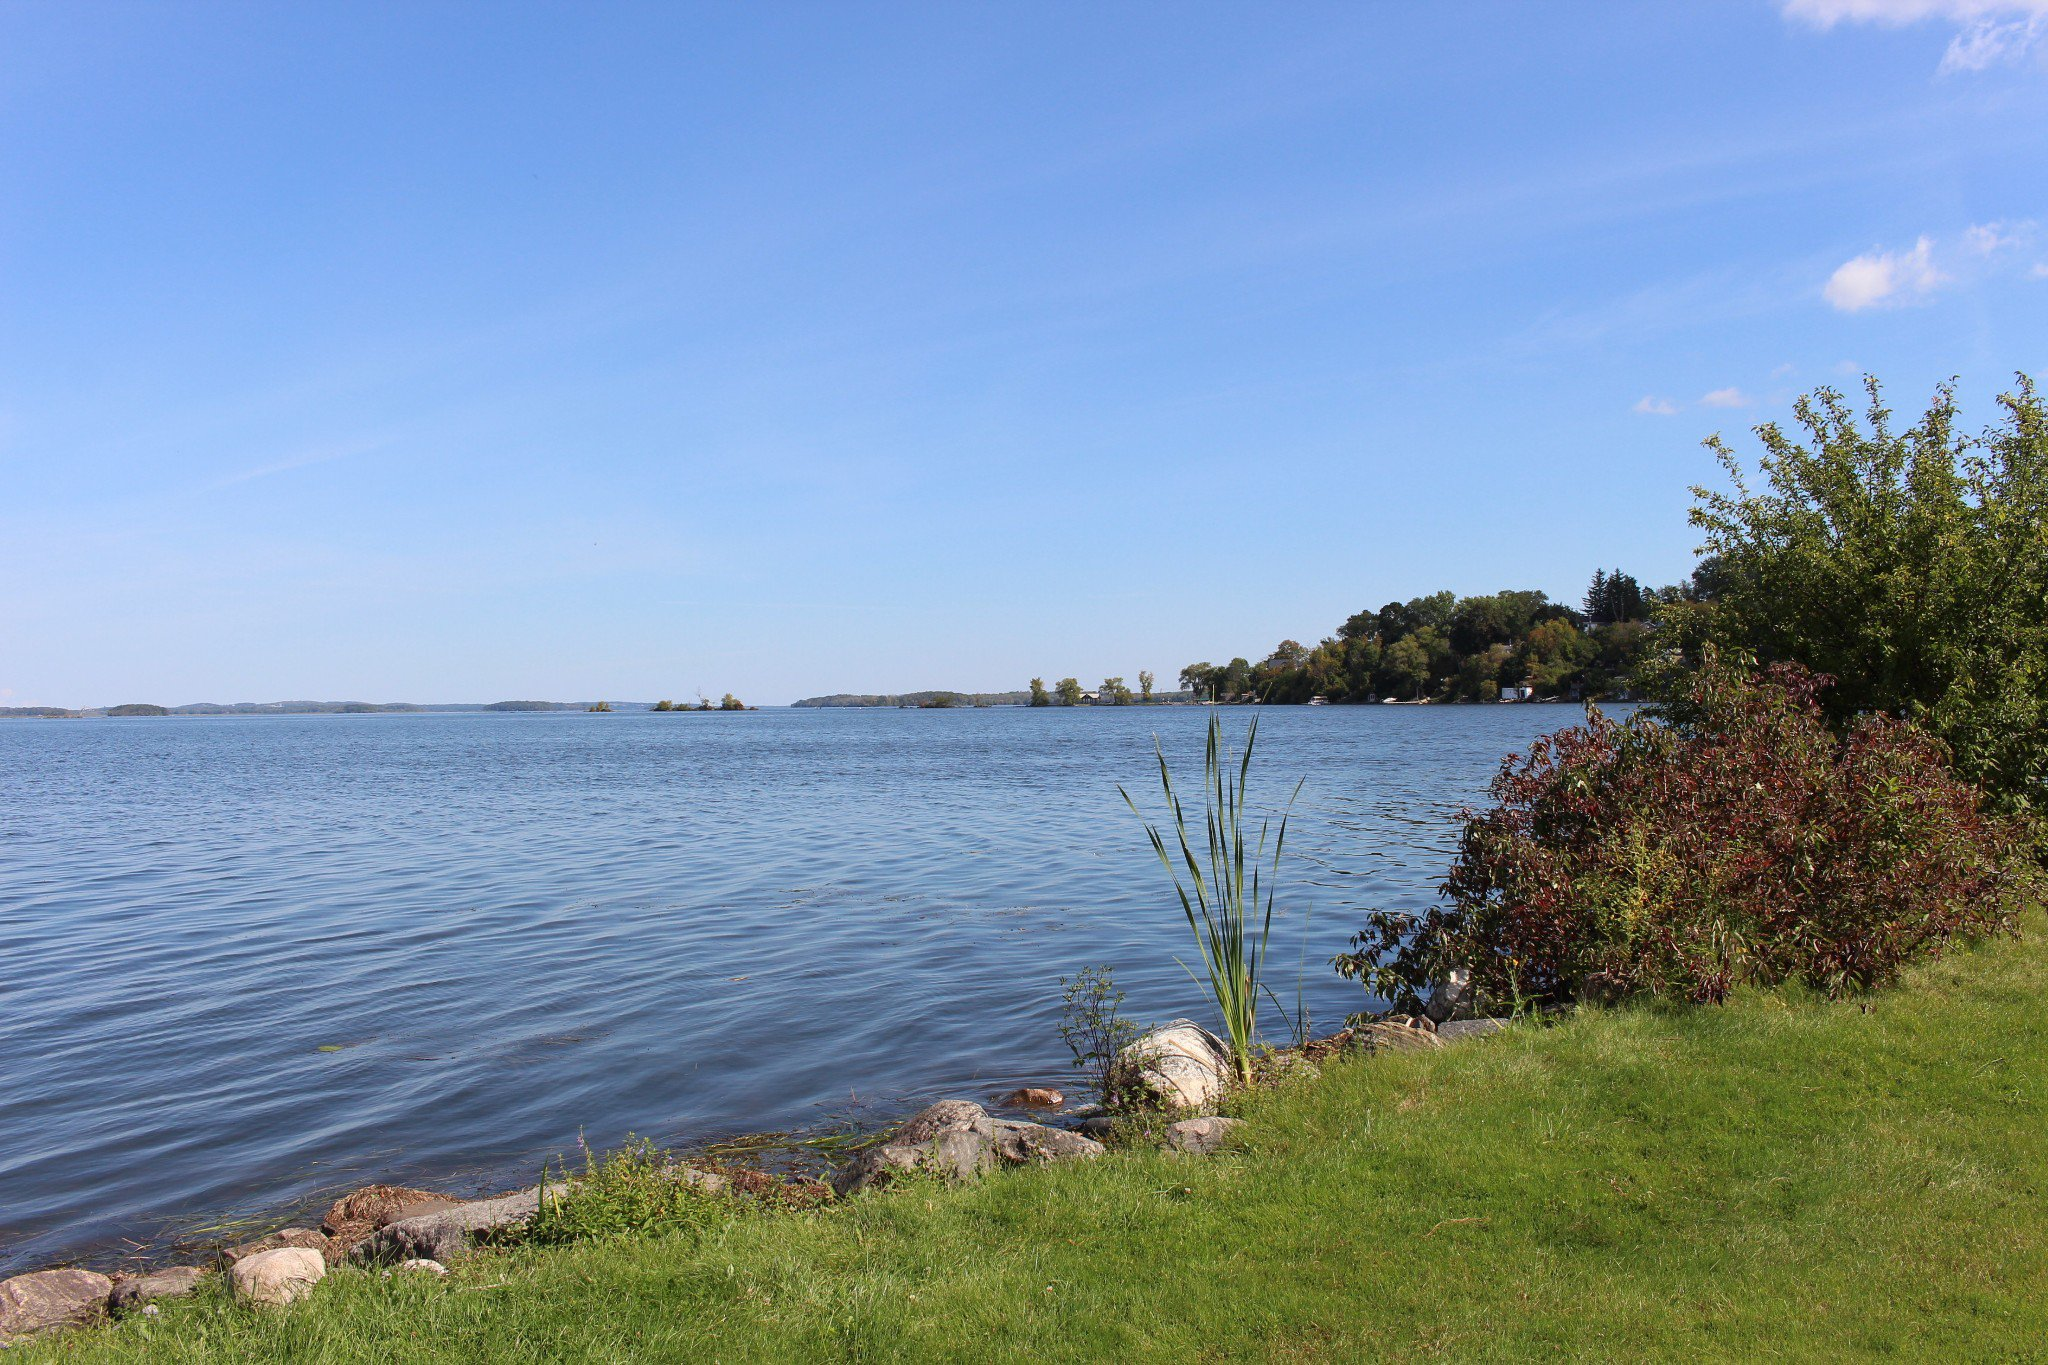 Photo 16: Photos: 6010 Rice Lake Scenic Drive in Harwood: Other for sale : MLS®# 223405